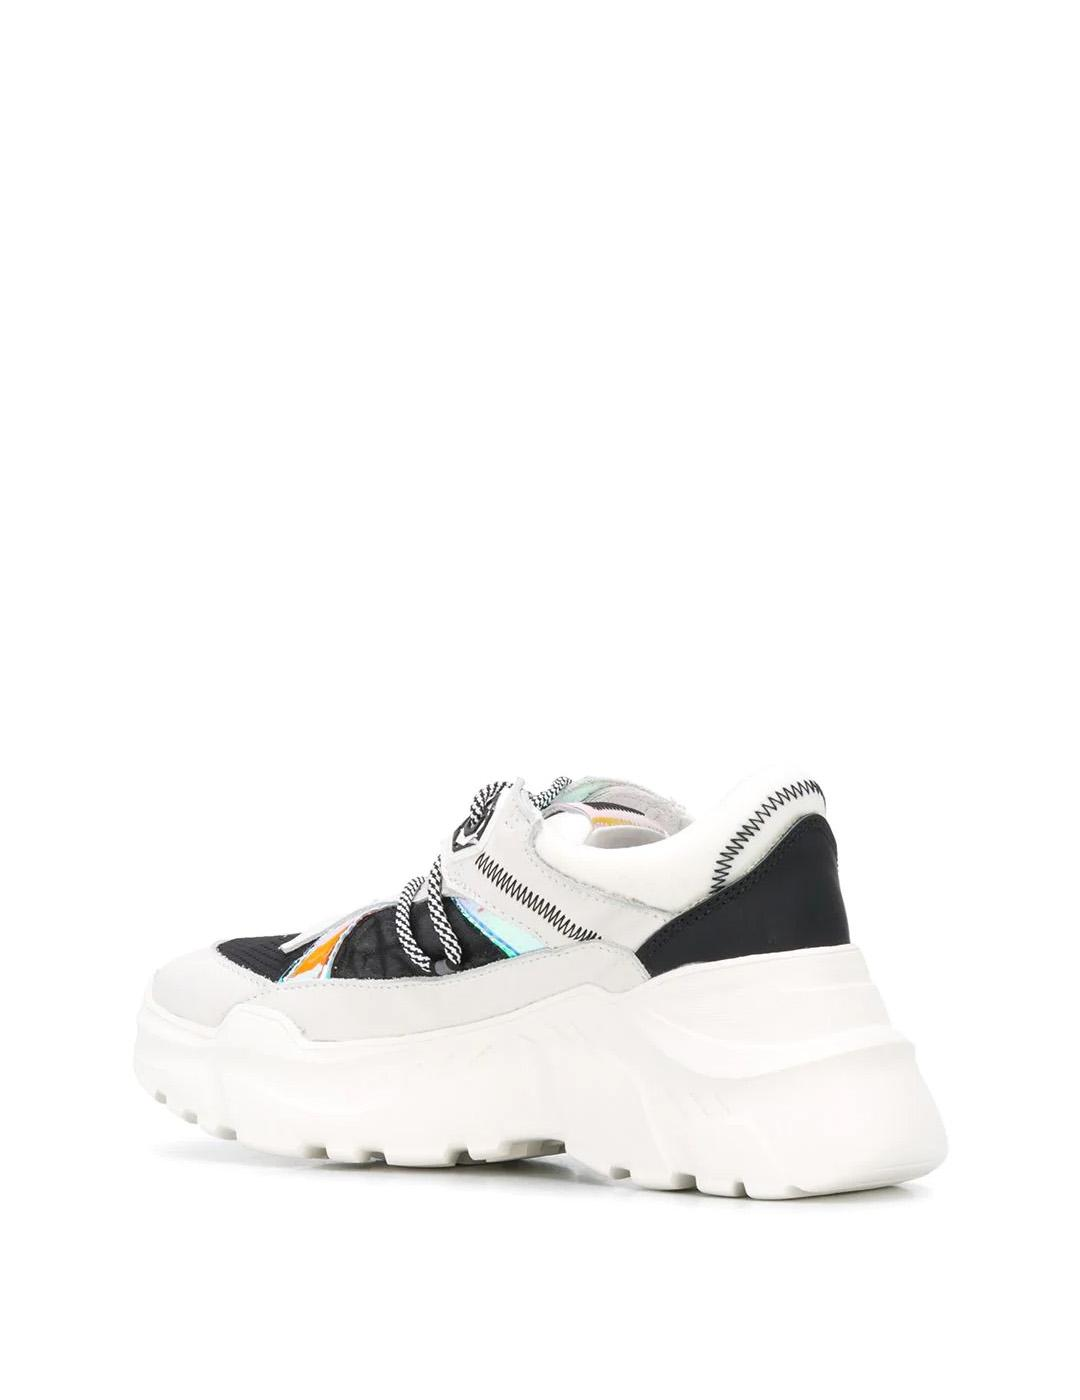 Sneakers Moa Concept blancos Ultrafutura Master of Arts